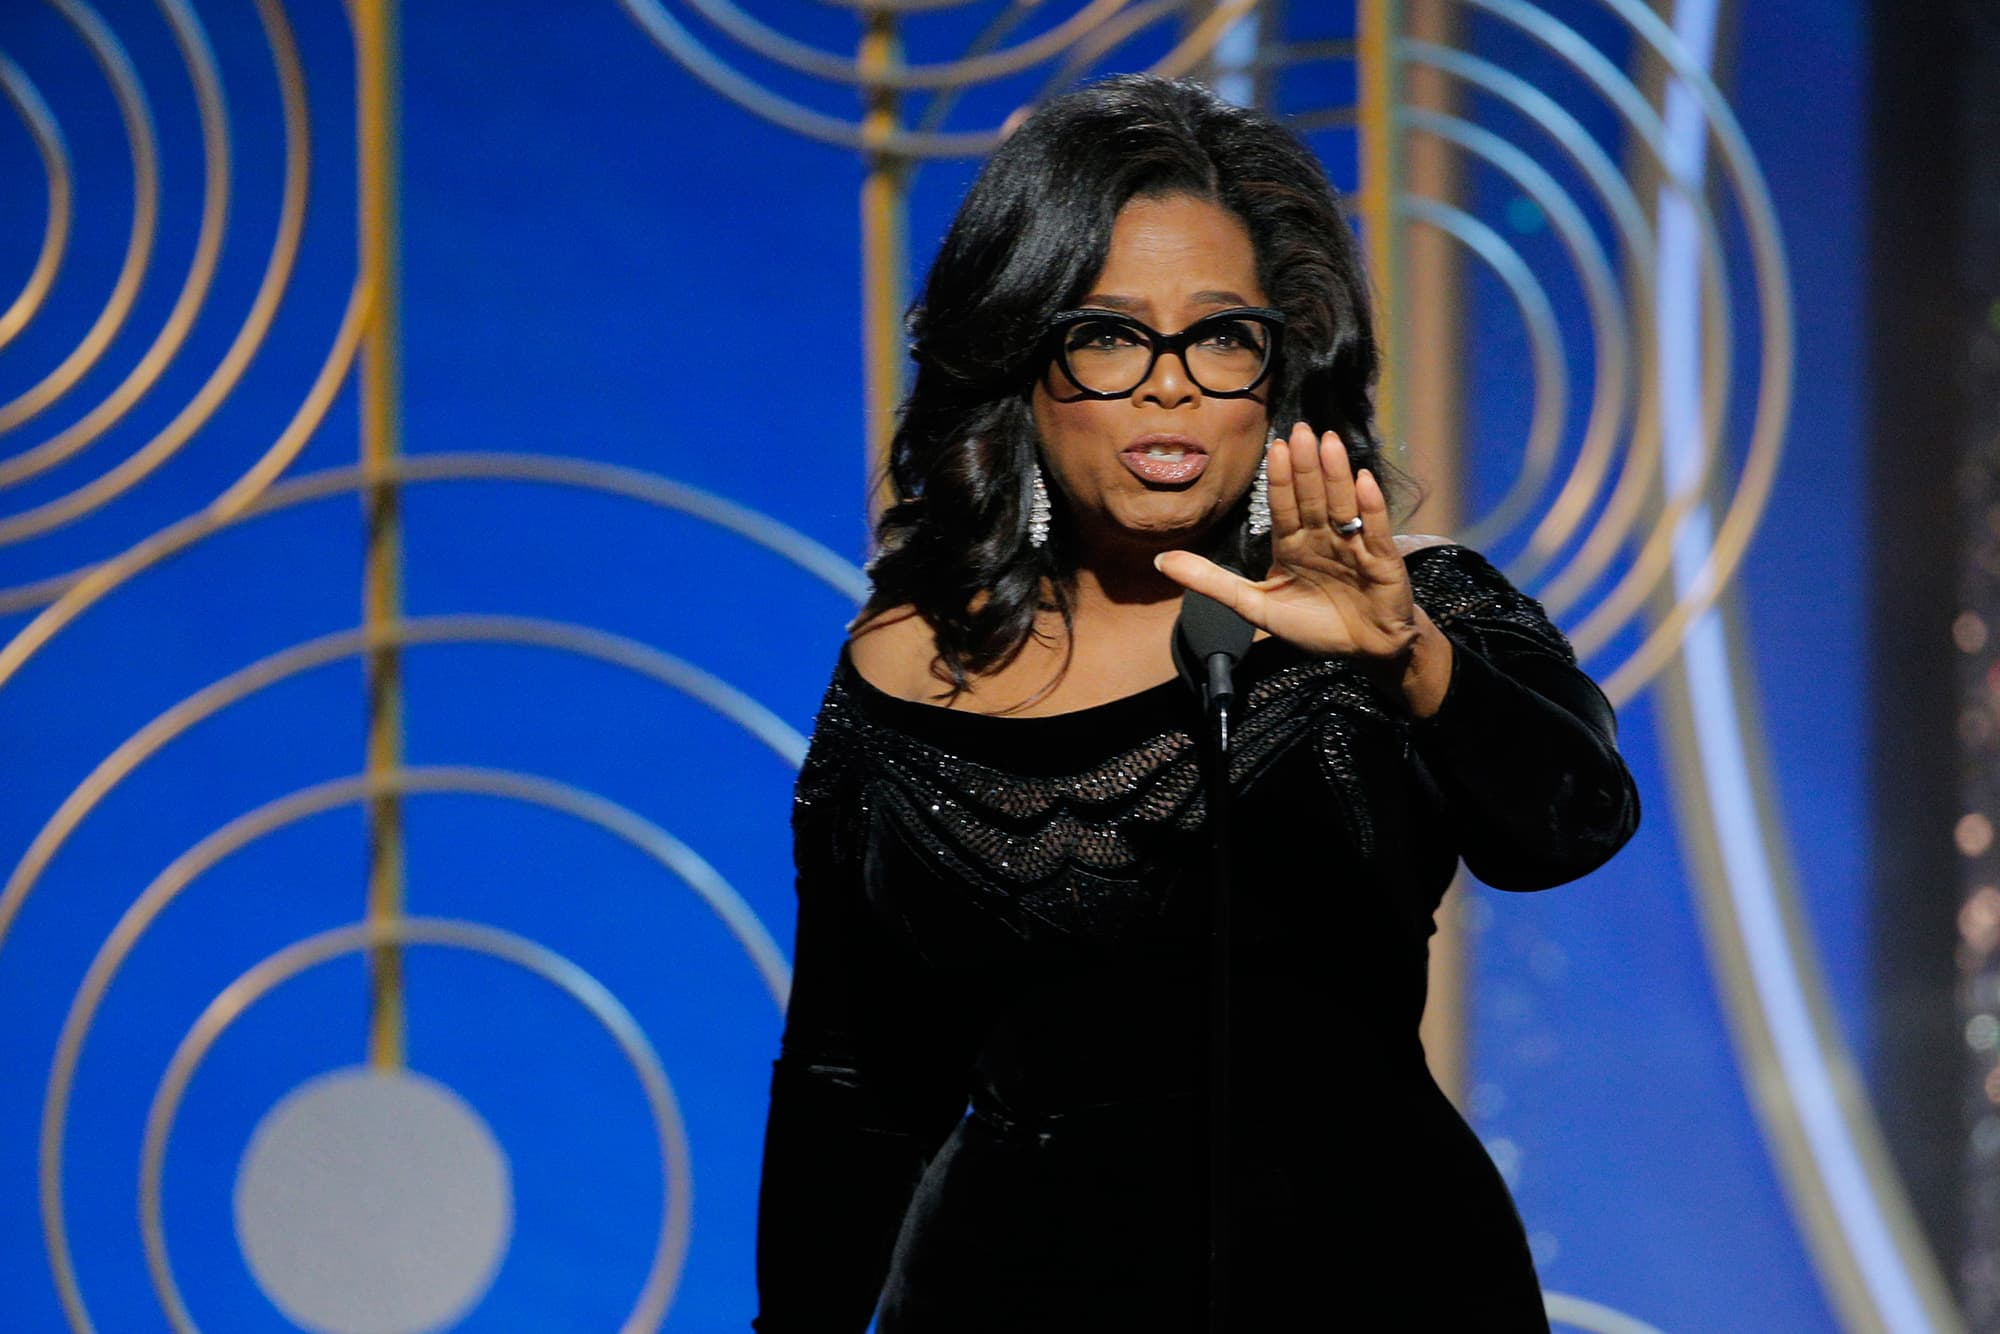 026c3f9535 Here s what Oprah did when she found out her male co-worker was making more  money than her